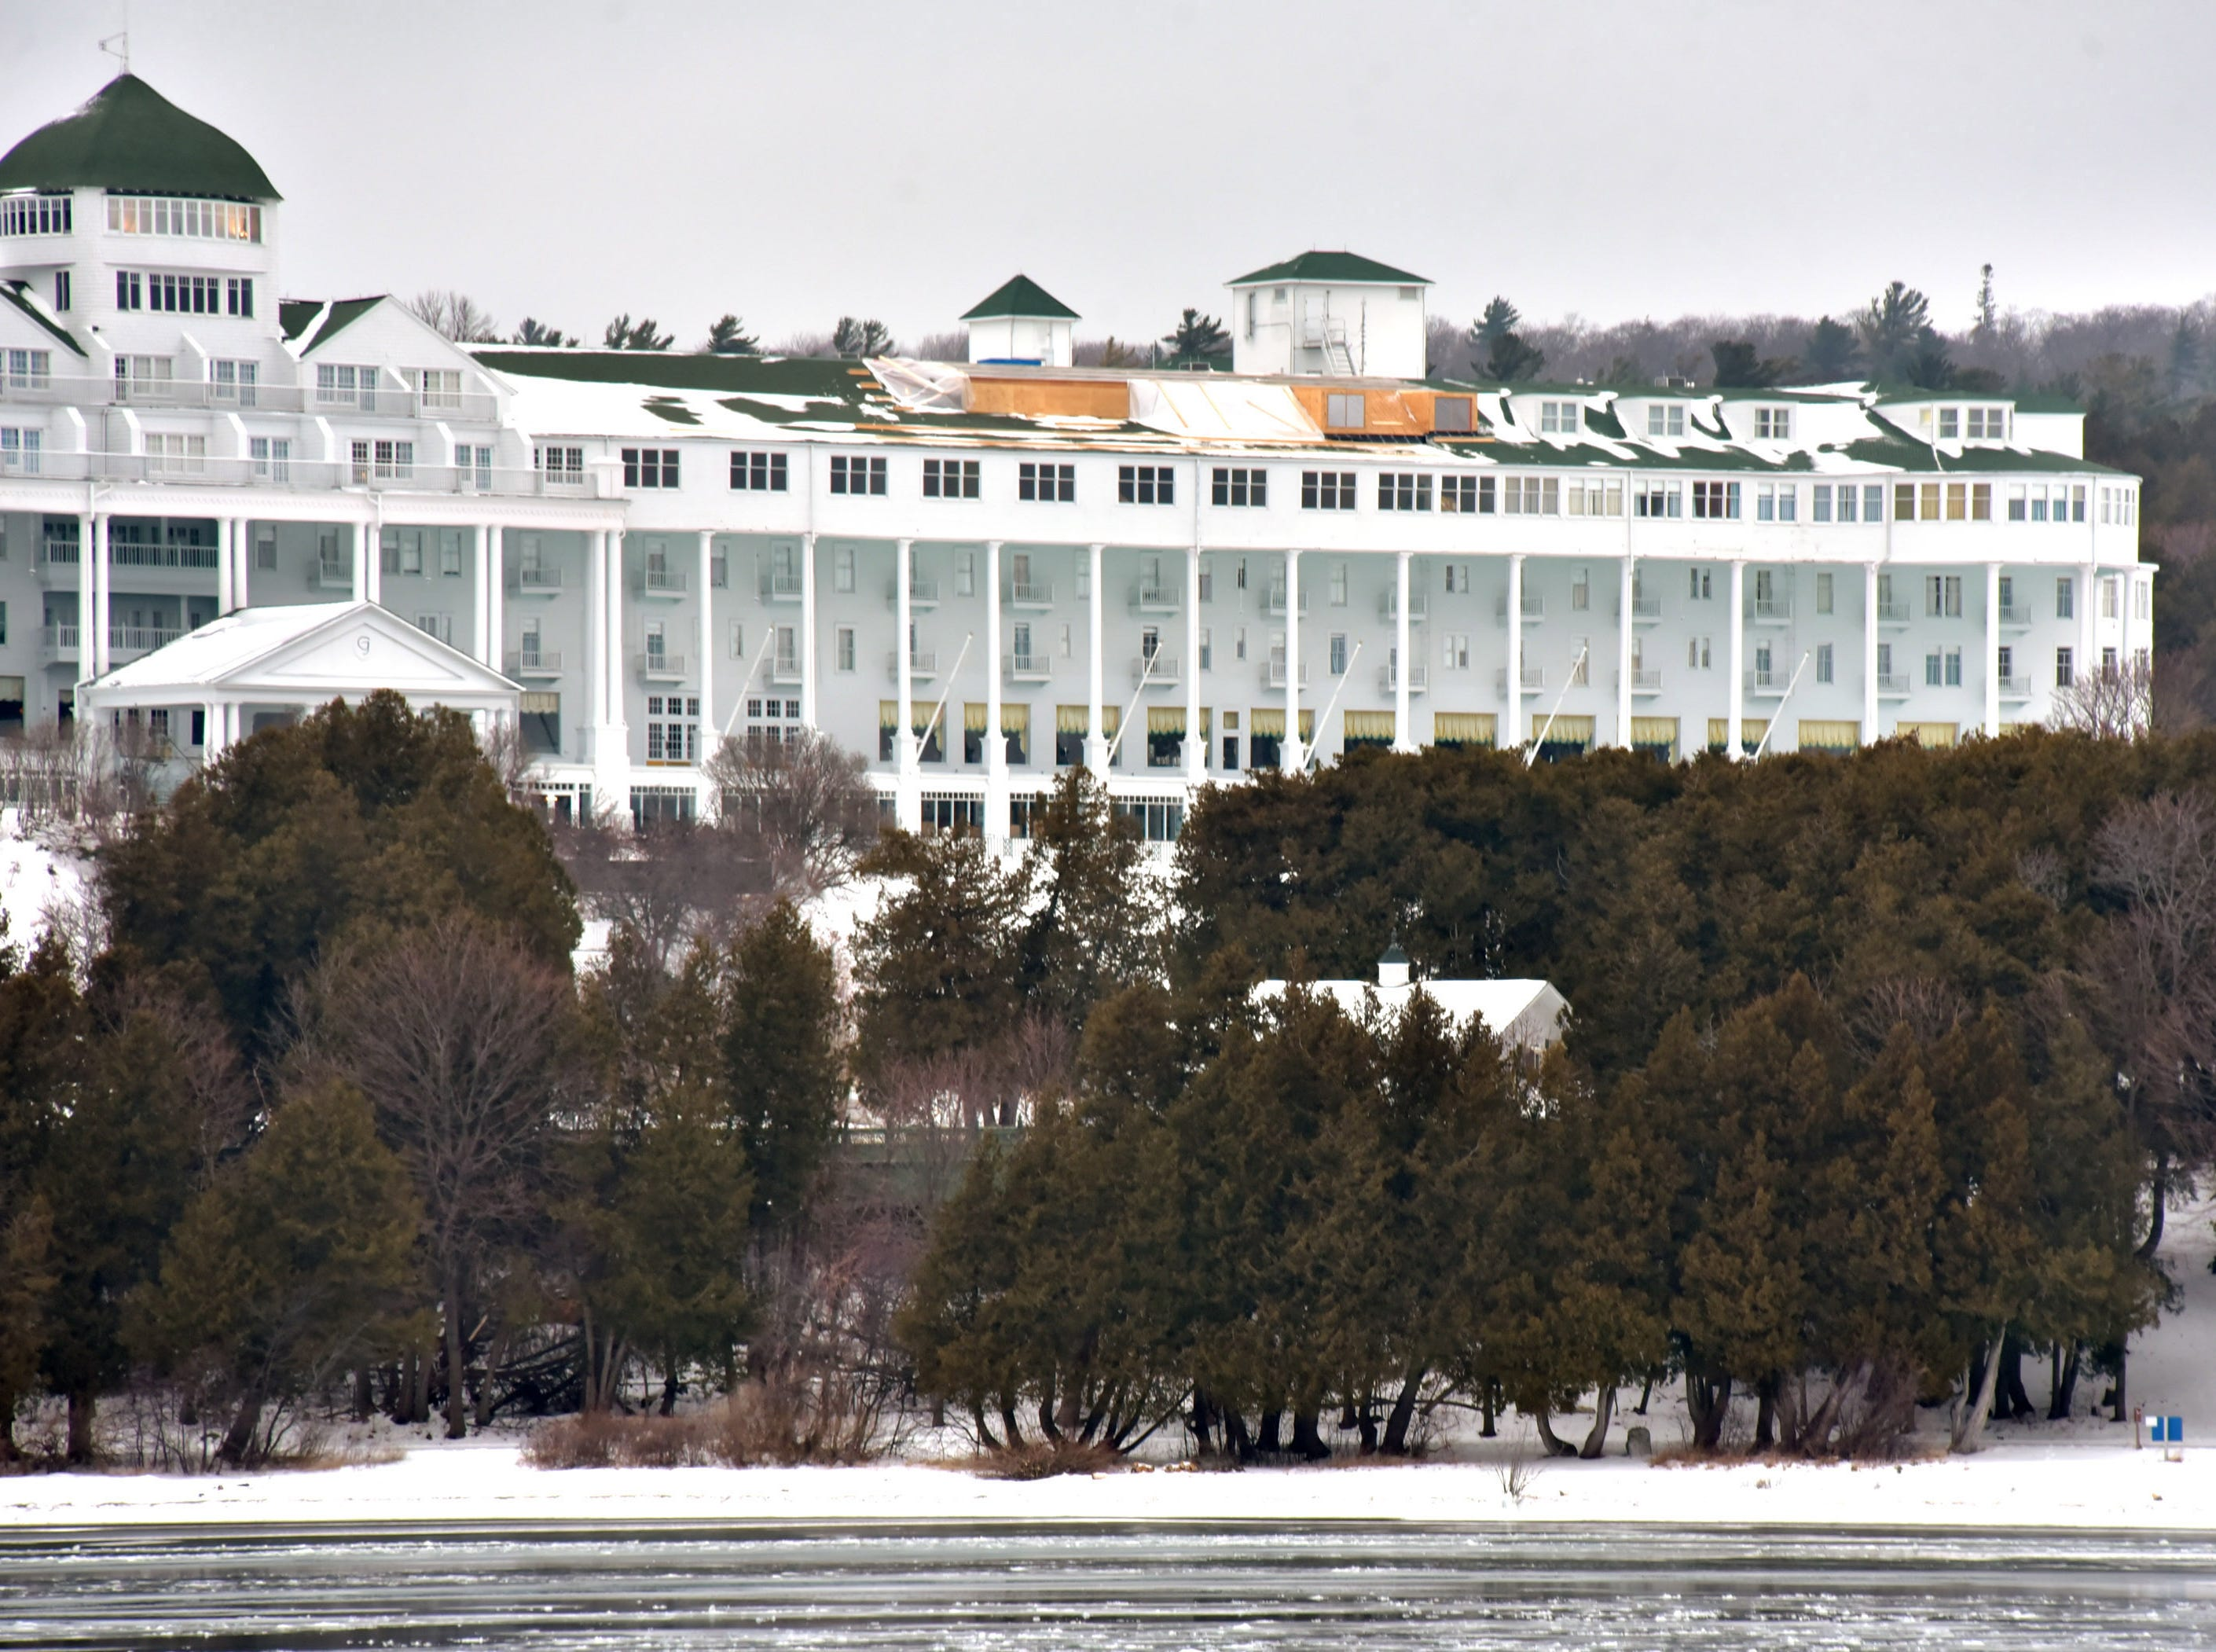 Mackinac Island's iconic Grand Hotel is in the final stage of building Cupola Suites — adding bedrooms and parlors on the fourth floor roof. The project began in 2014 and will add three bedrooms and three parlors.